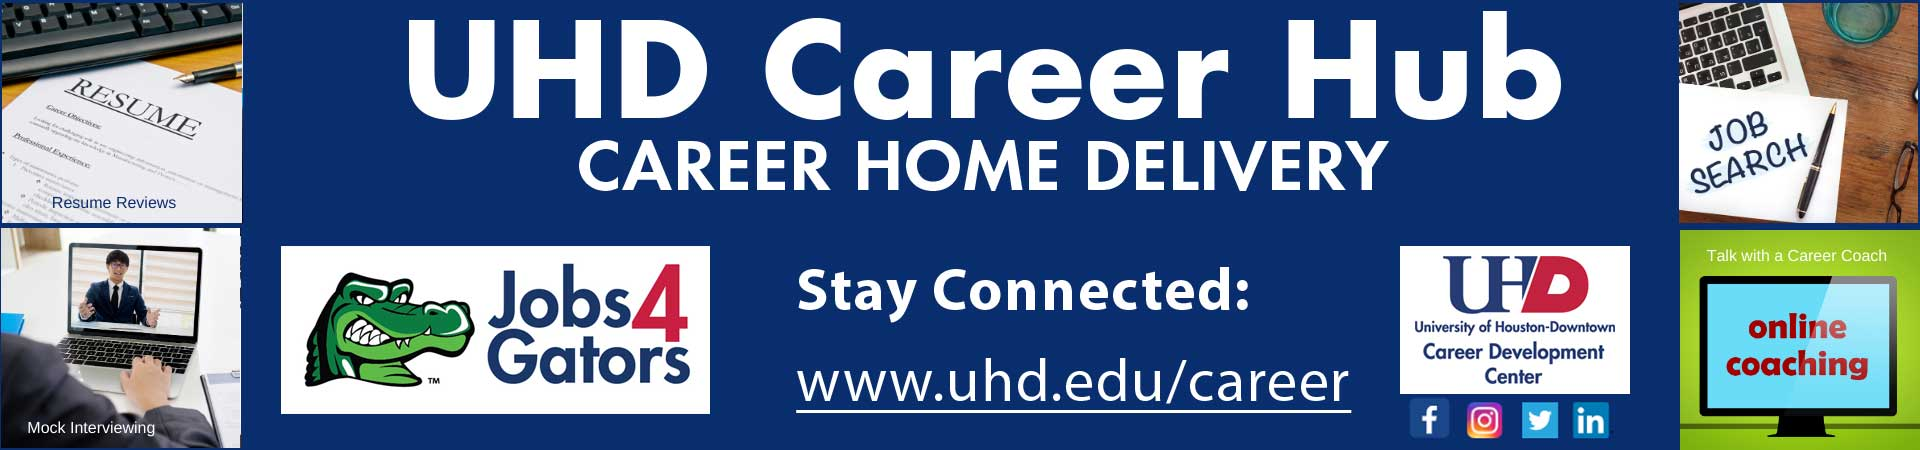 Promo for Career Hub to stay connected